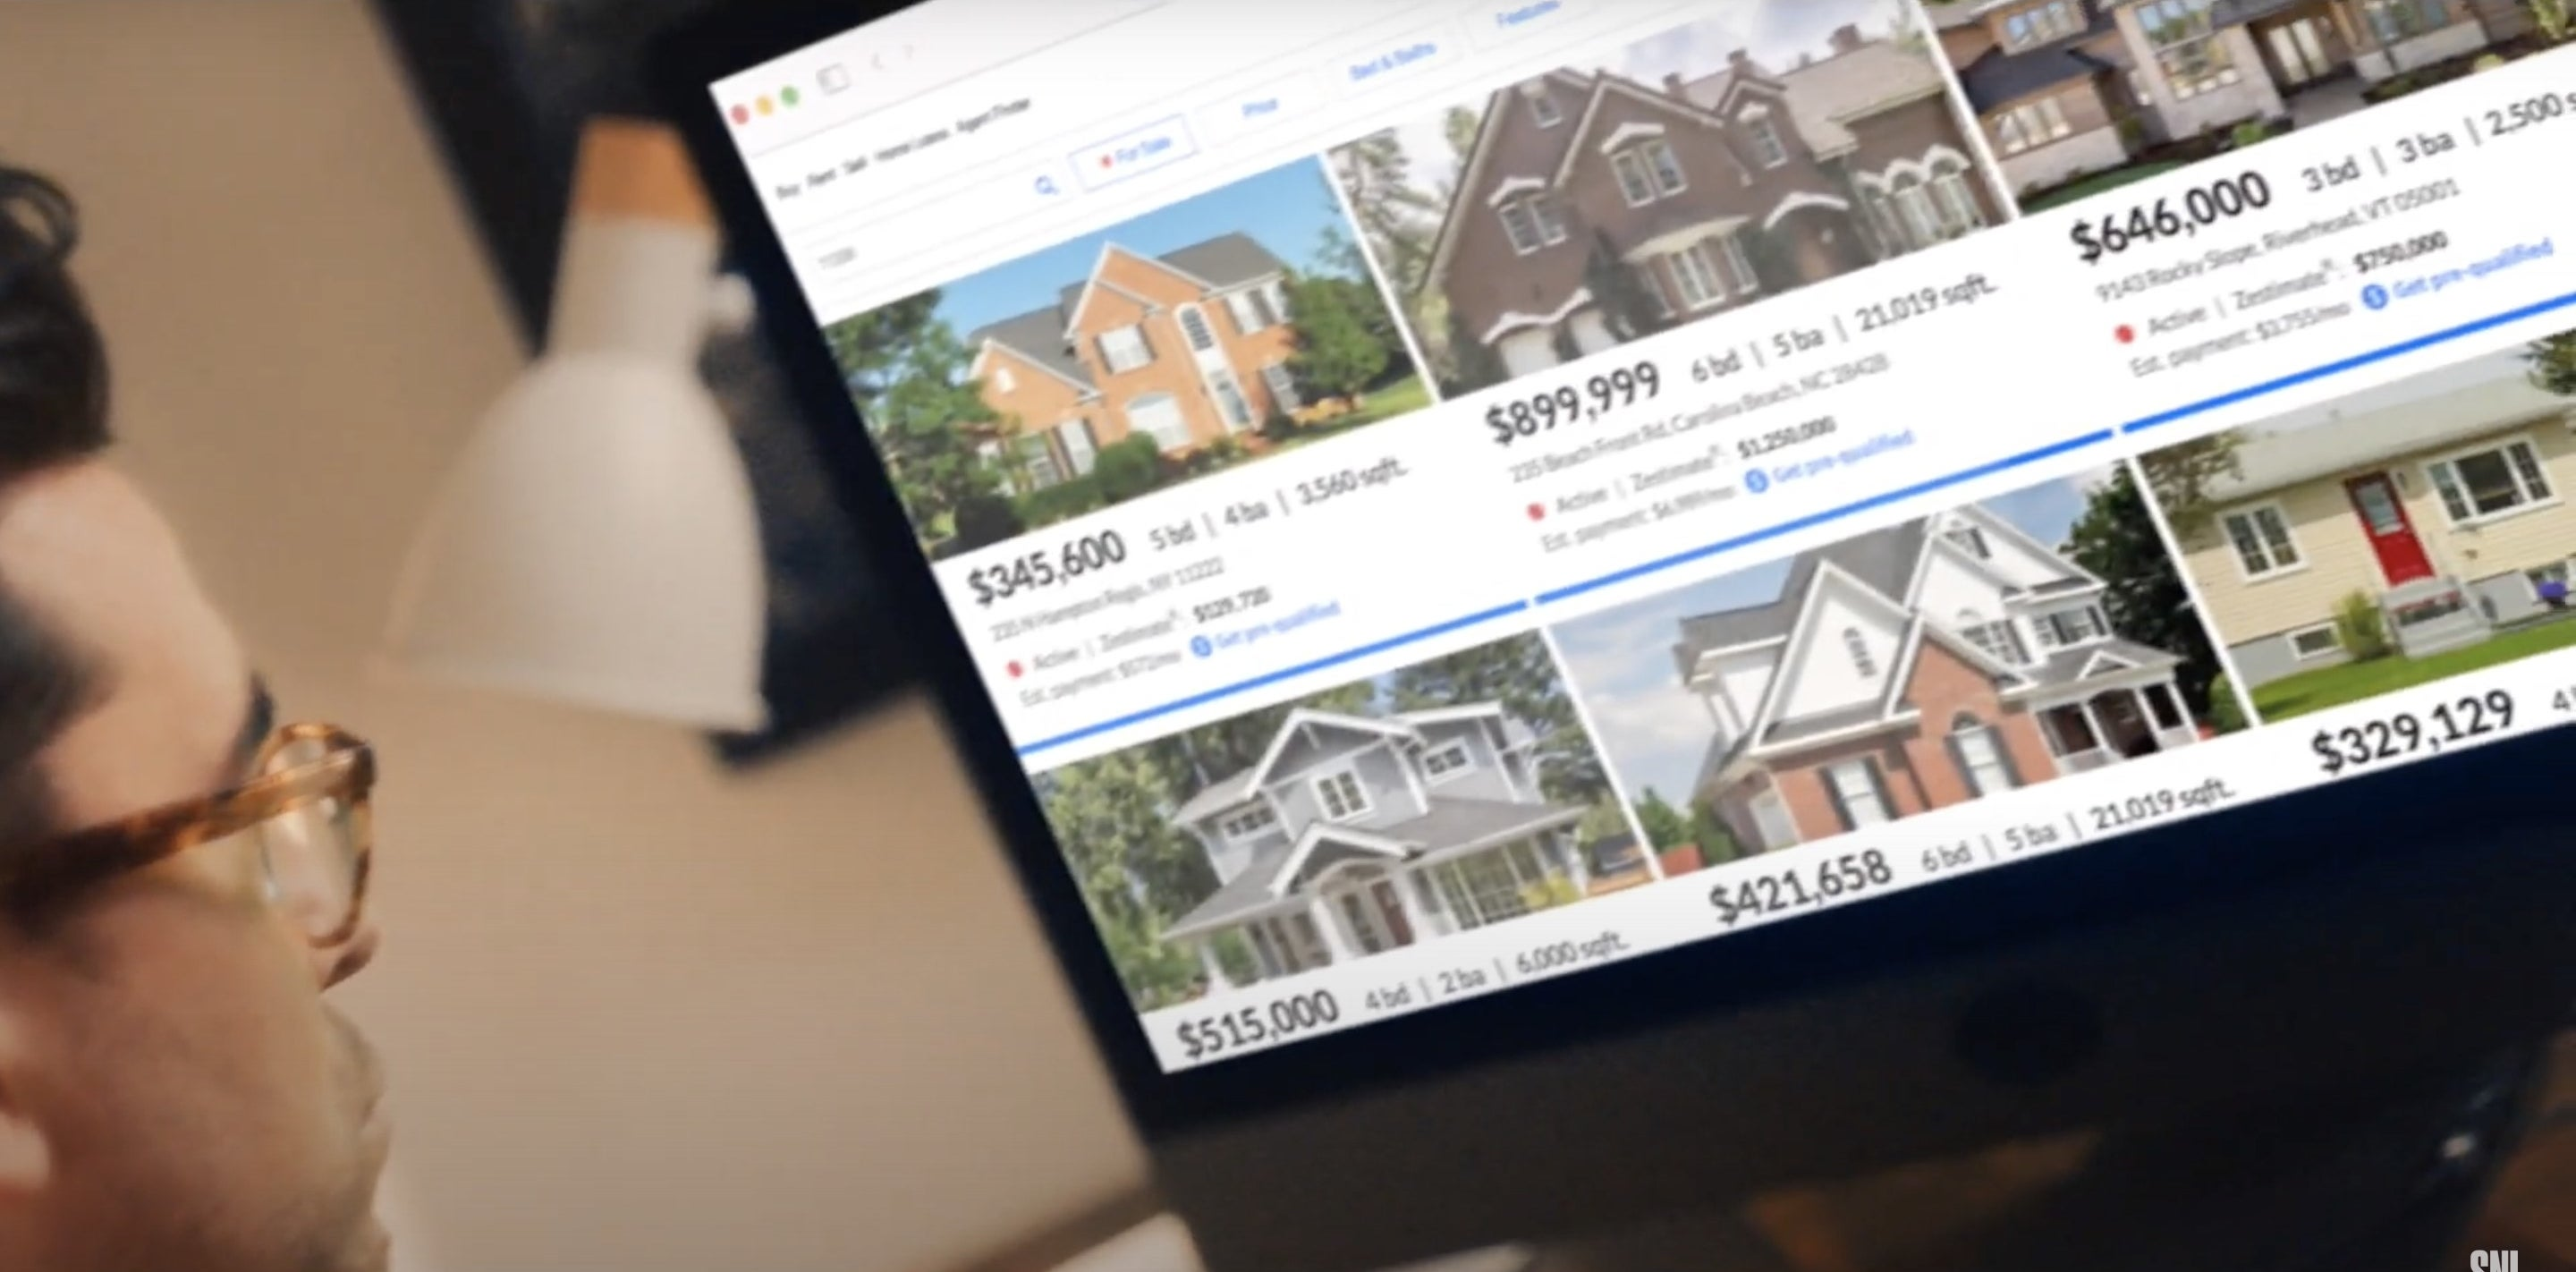 A man looks at a screen filled with Zillow listings